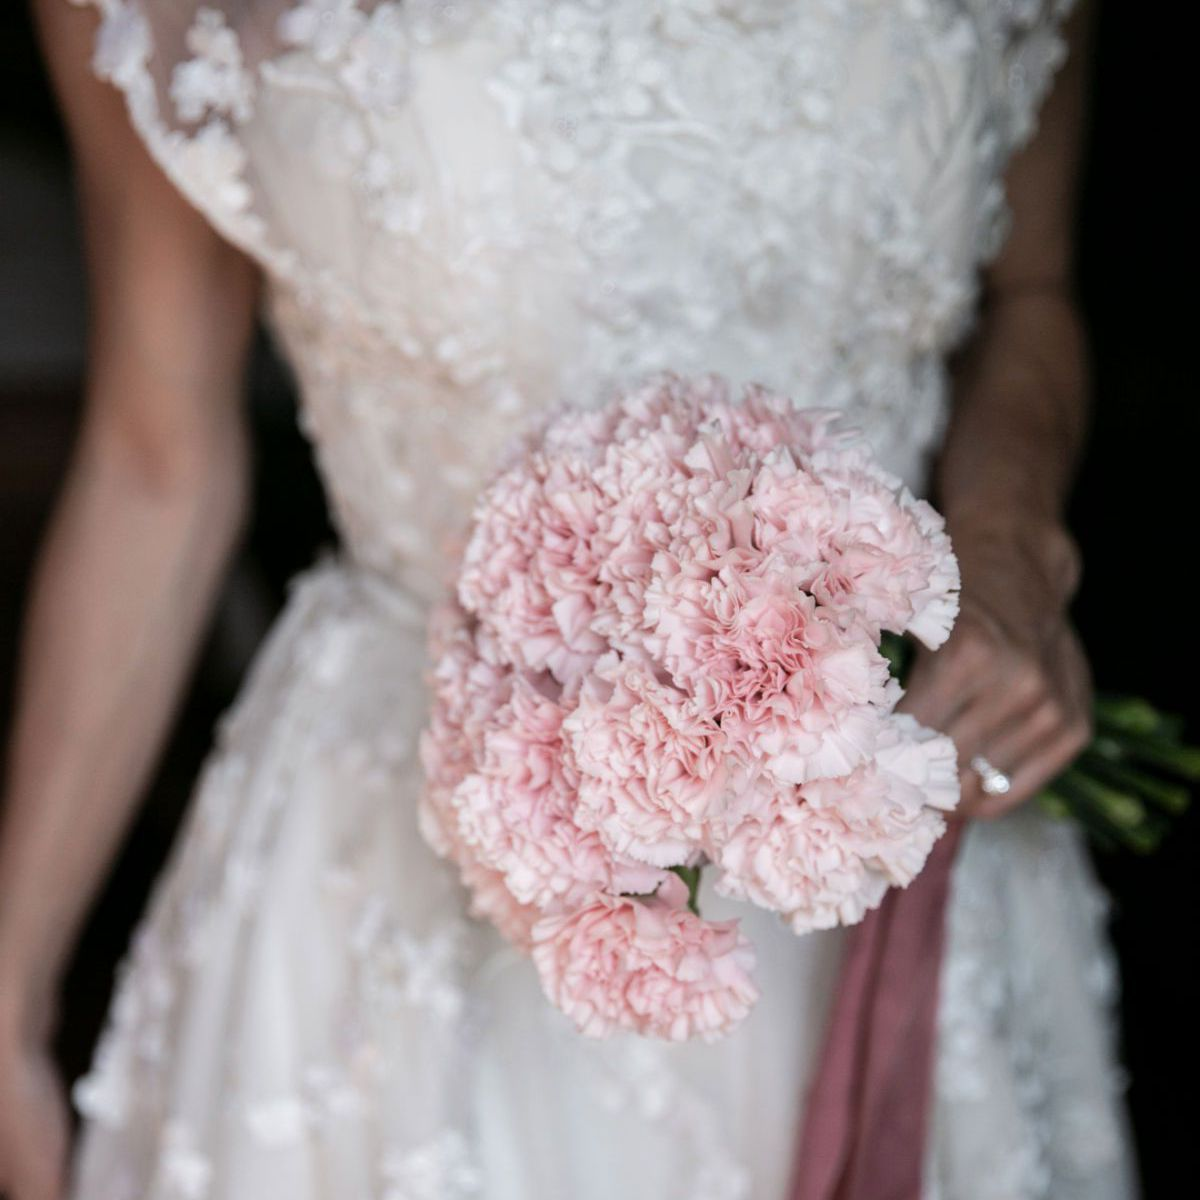 Bride holding posy bouquet of pink carnations